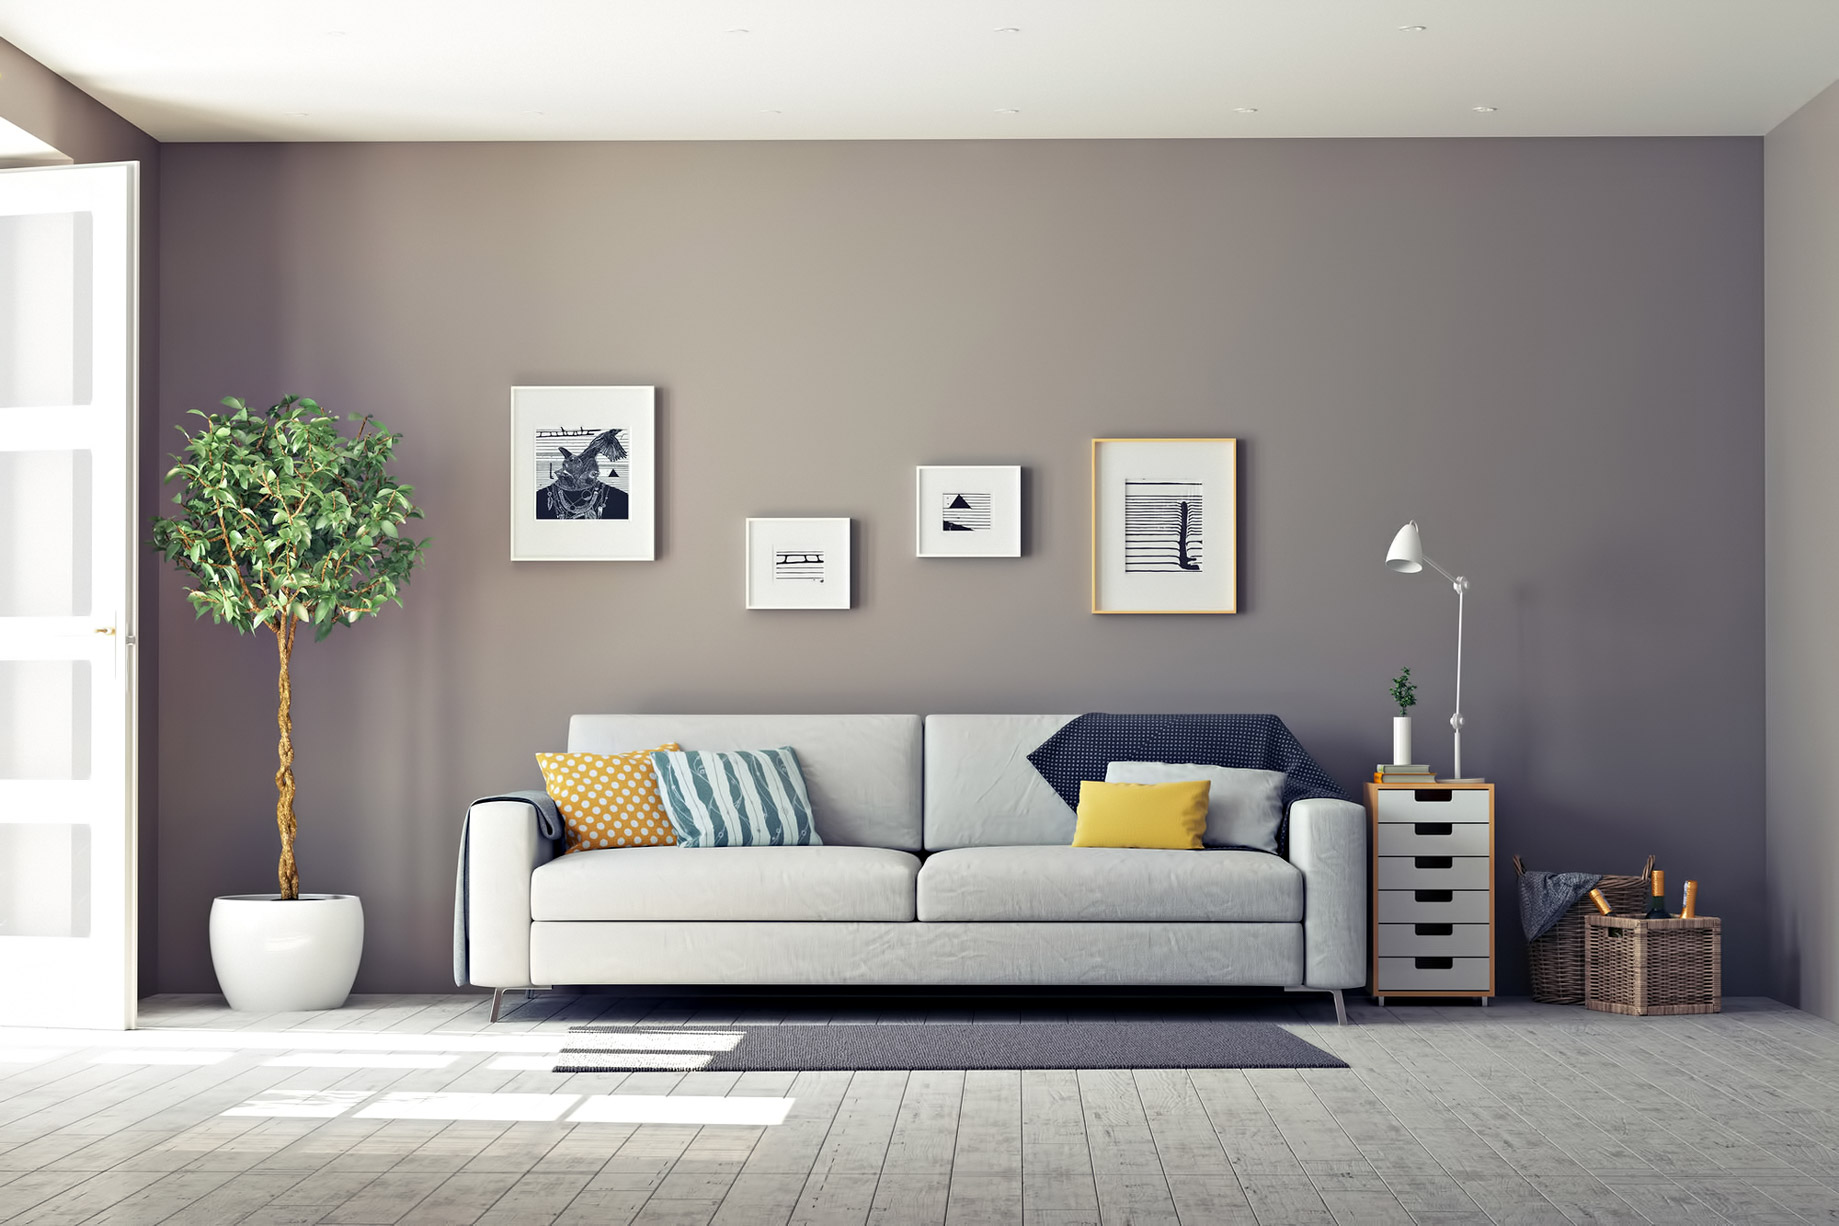 Simplify Your Home by Eliminating Clutter - Upscale Your Living Spaces - How to Make Your Home Look and Feel Luxurious